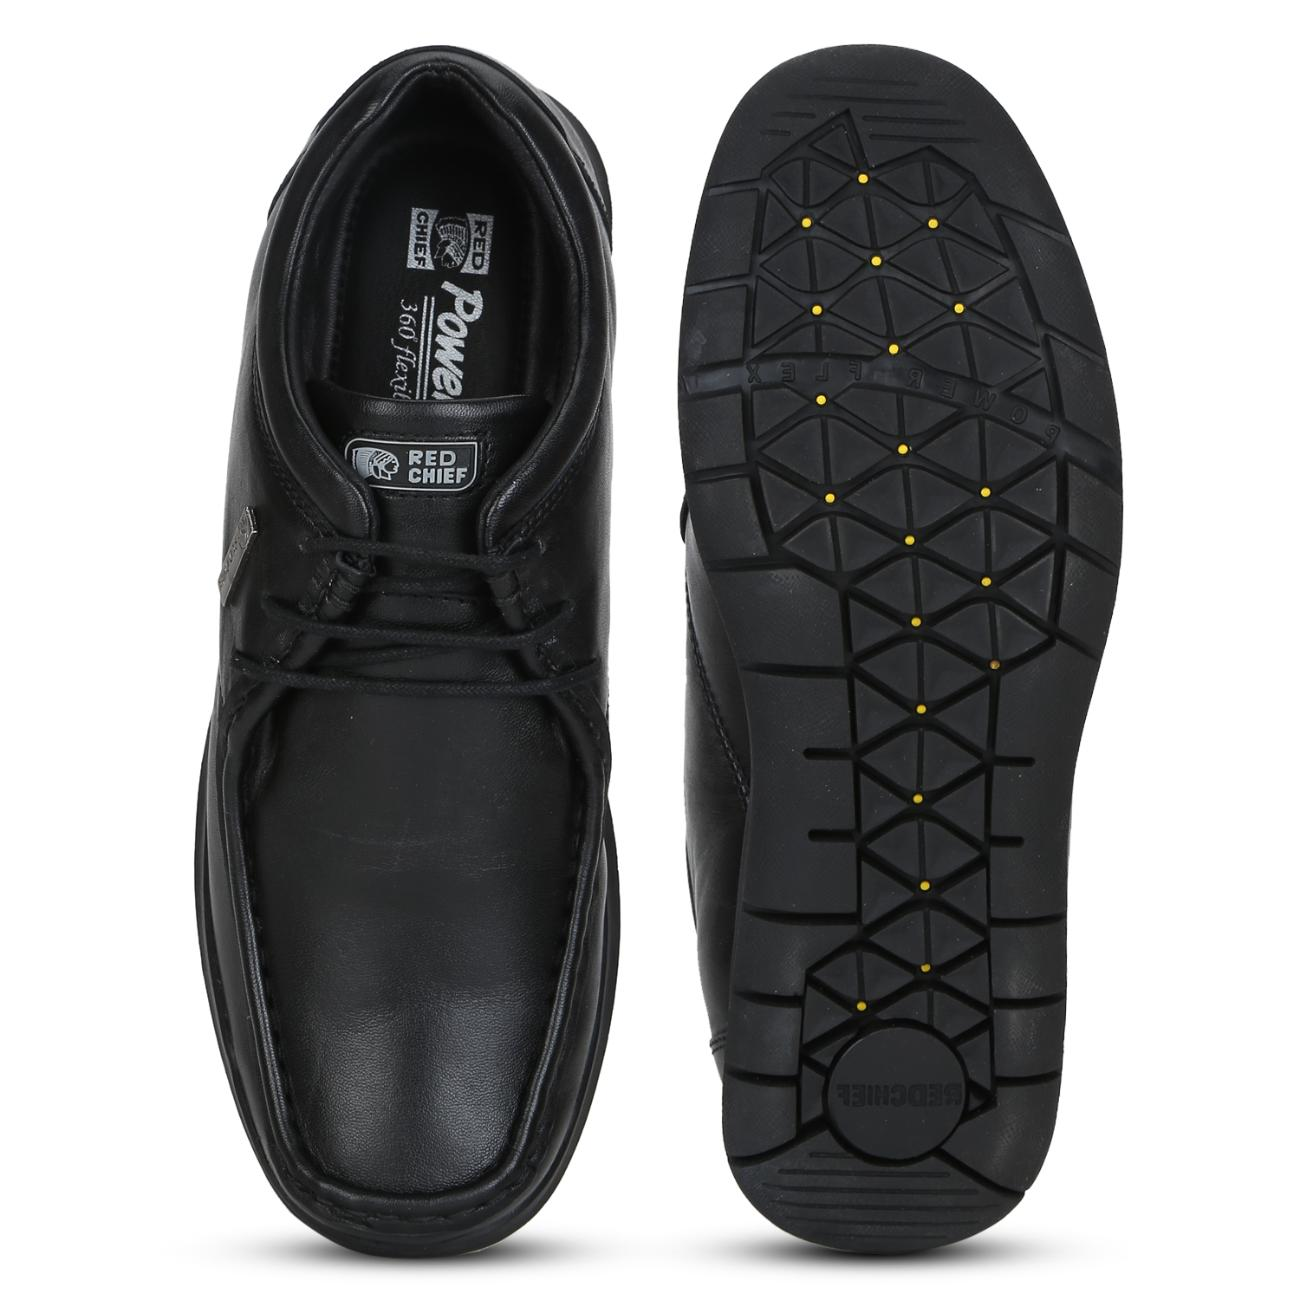 black leather lace up formal shoes from behind